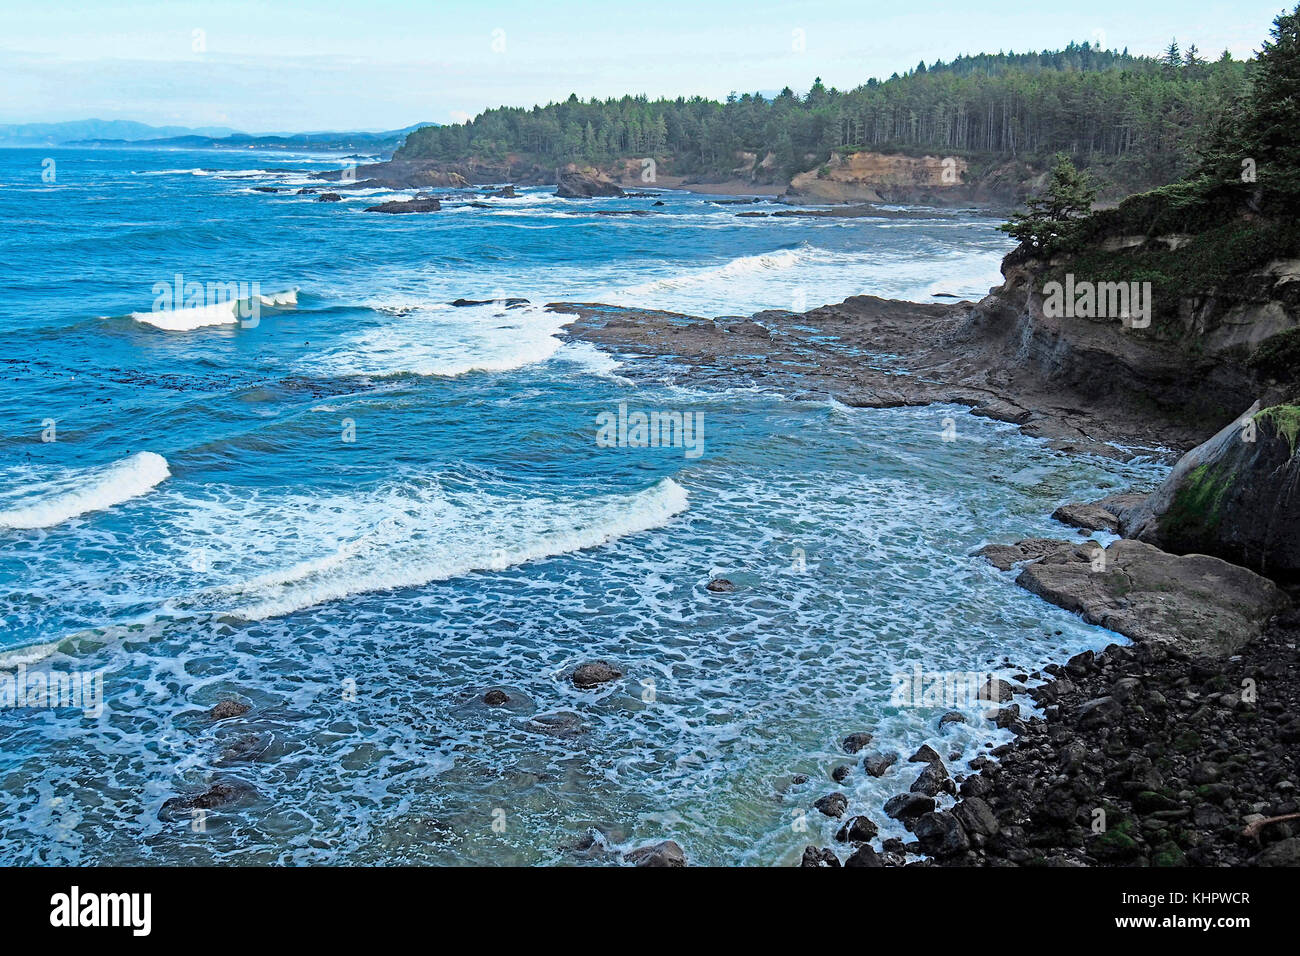 Boiler Bay Stock Photos & Boiler Bay Stock Images - Alamy